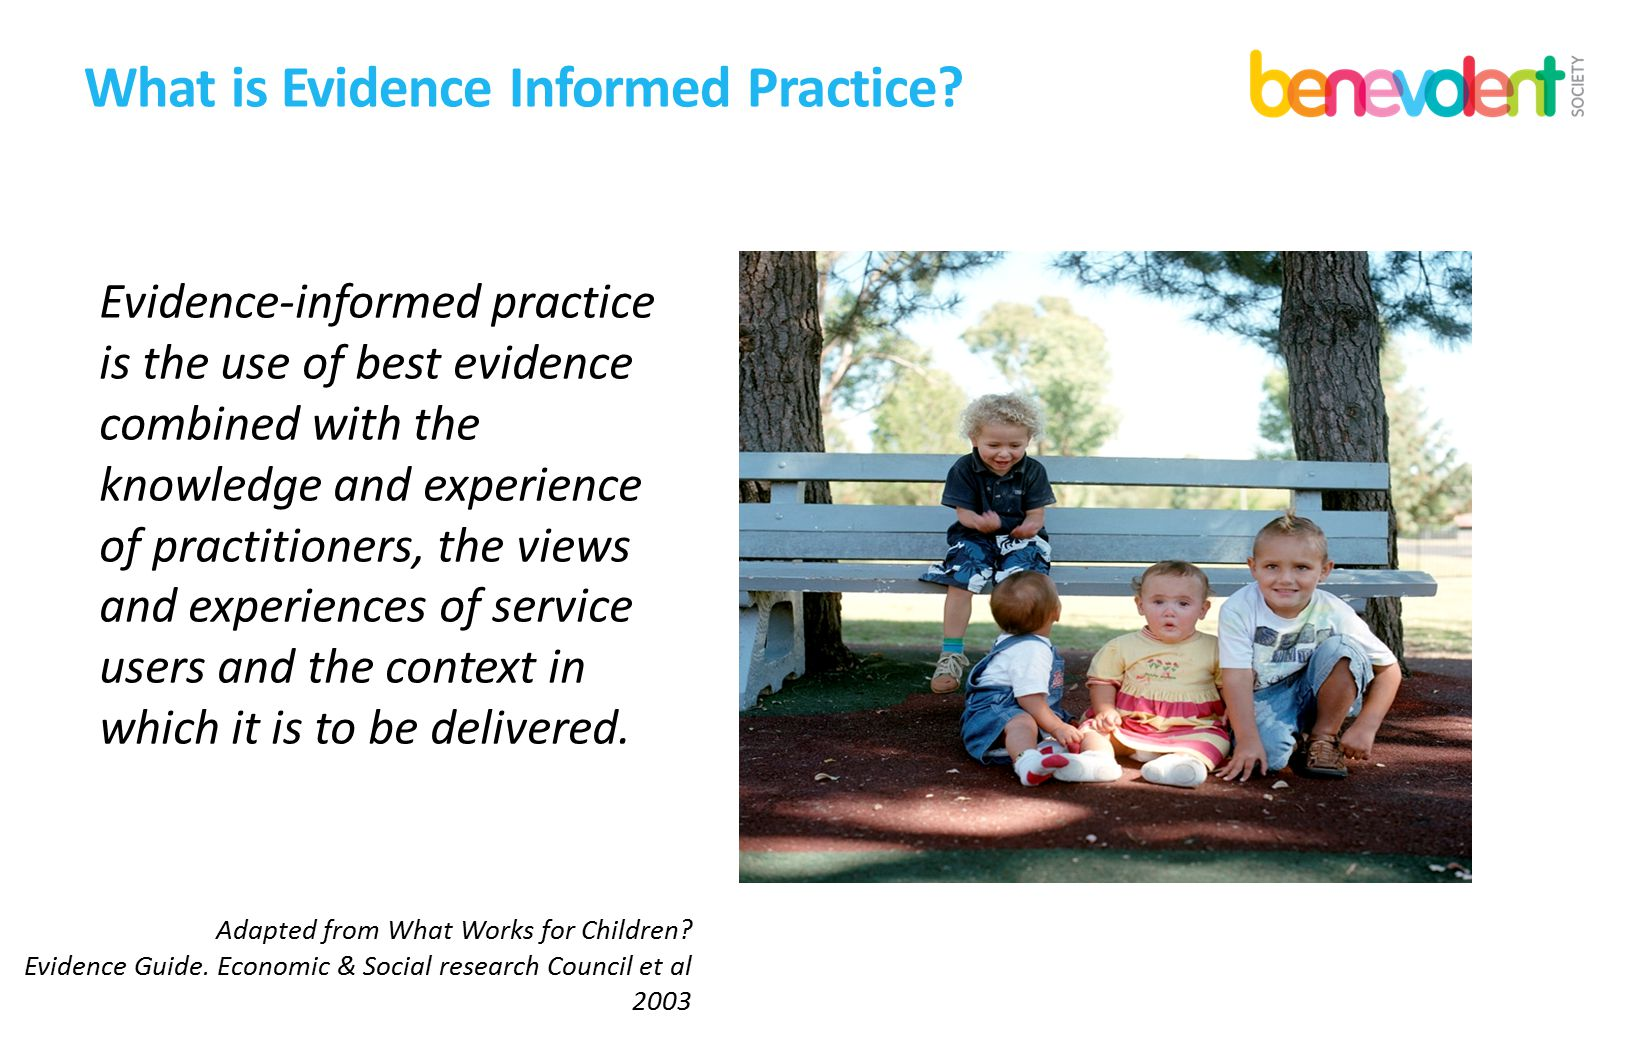 What is Evidence Informed Practice